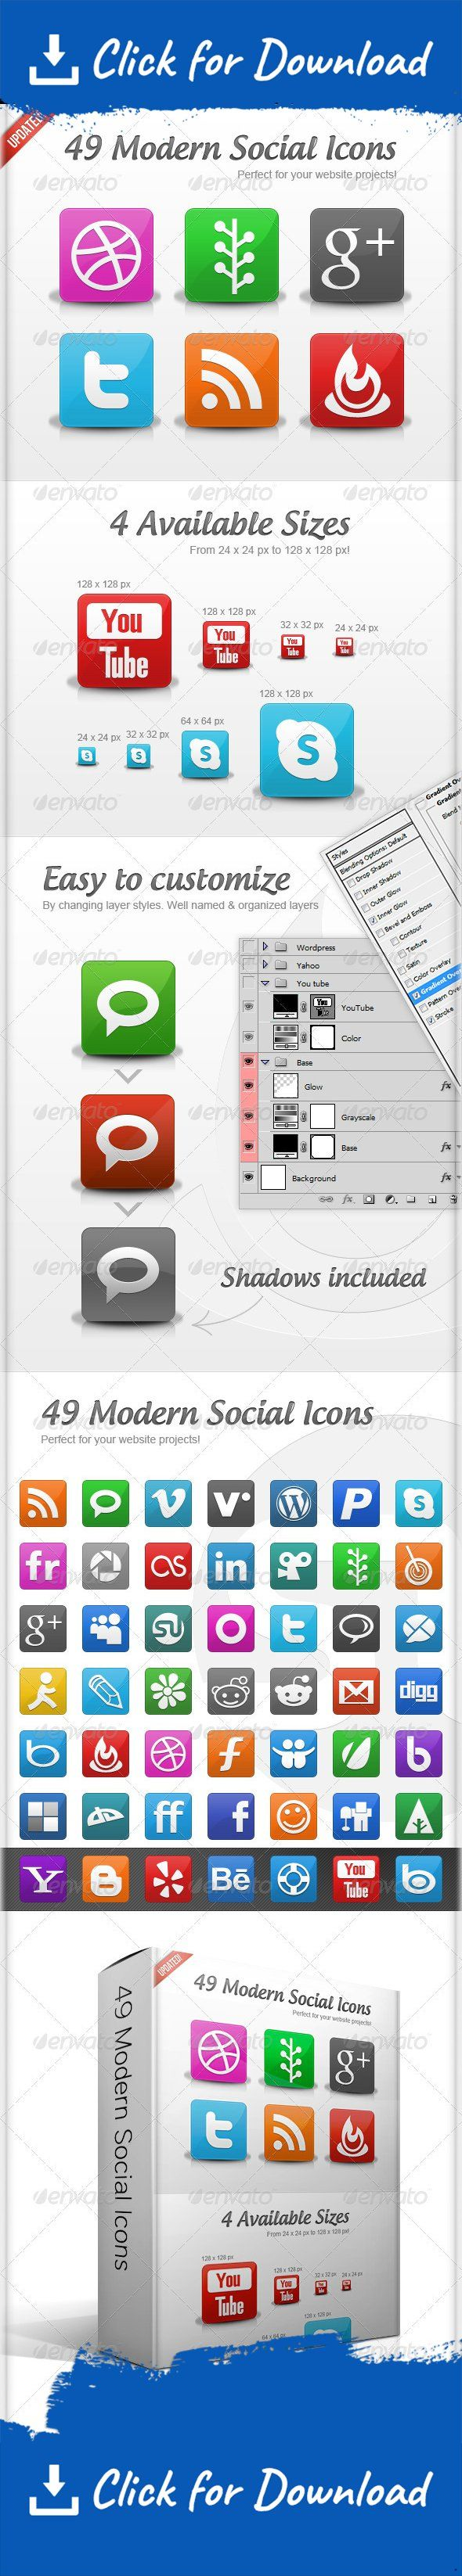 blogger, delicious, digg, facebook, flickr, lastfm, linkedin, media, media icons, myspace, network, network icons, networking, networking icons, rss, skype, social, social icons, social media, social network, social networking, stumbleupon, tumblr, twitter, vimeo, web, web icons, www, youtube    This is a pack of 49 social icons great for modern websites. All icons are easy to edit, customize and resize, because of VECTOR SHAPES and very well organized layers.   Included sizes: 24×24...